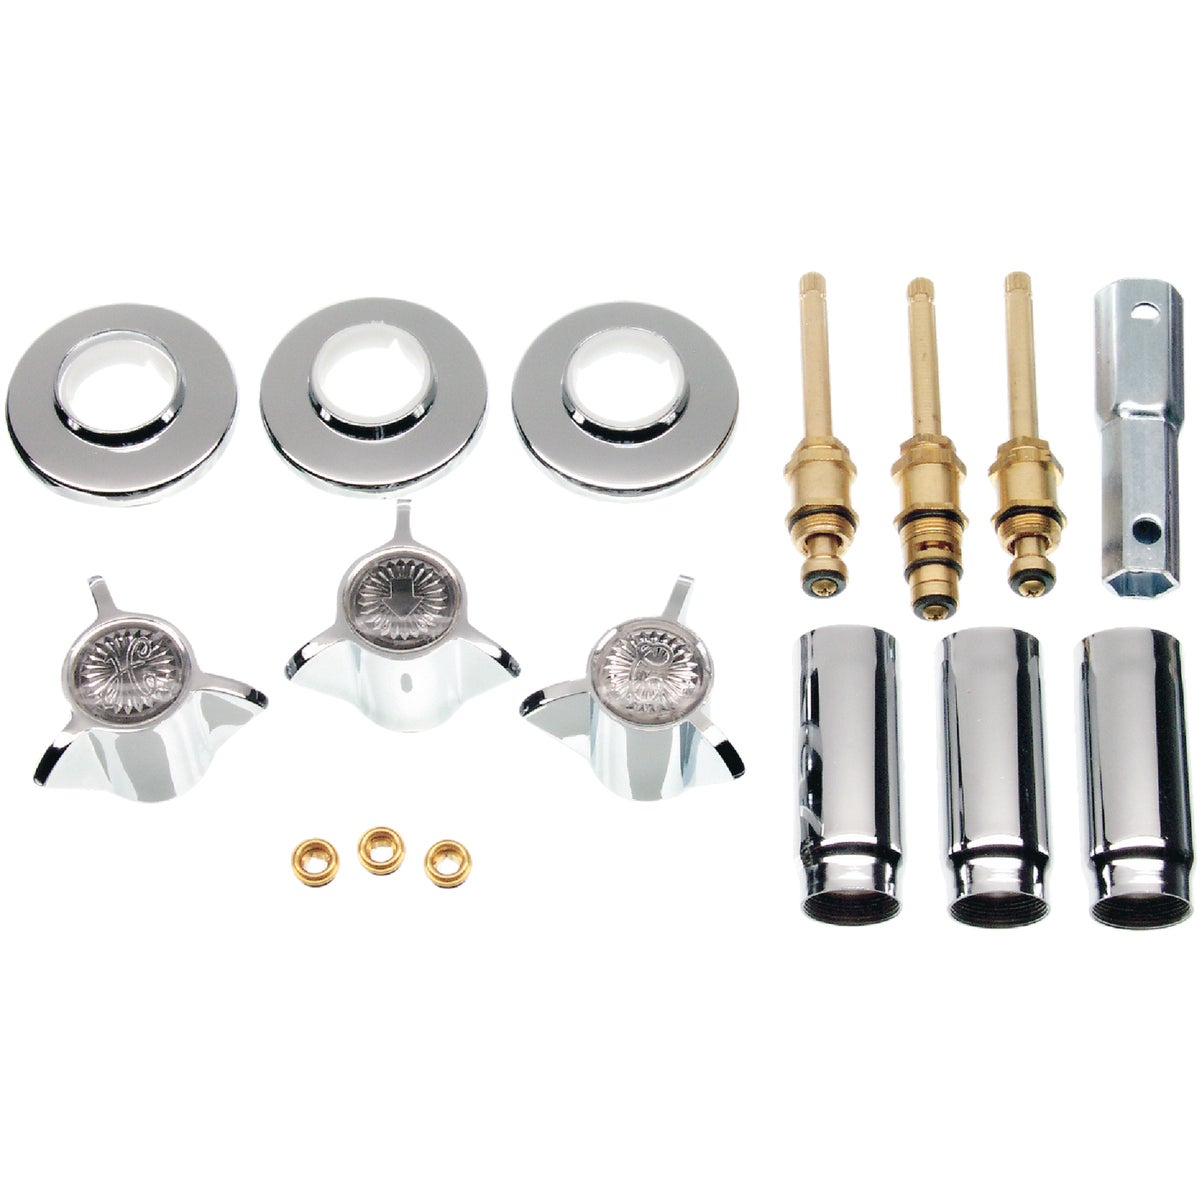 SAYCO REPAIR KIT - 39620 by Danco Perfect Match